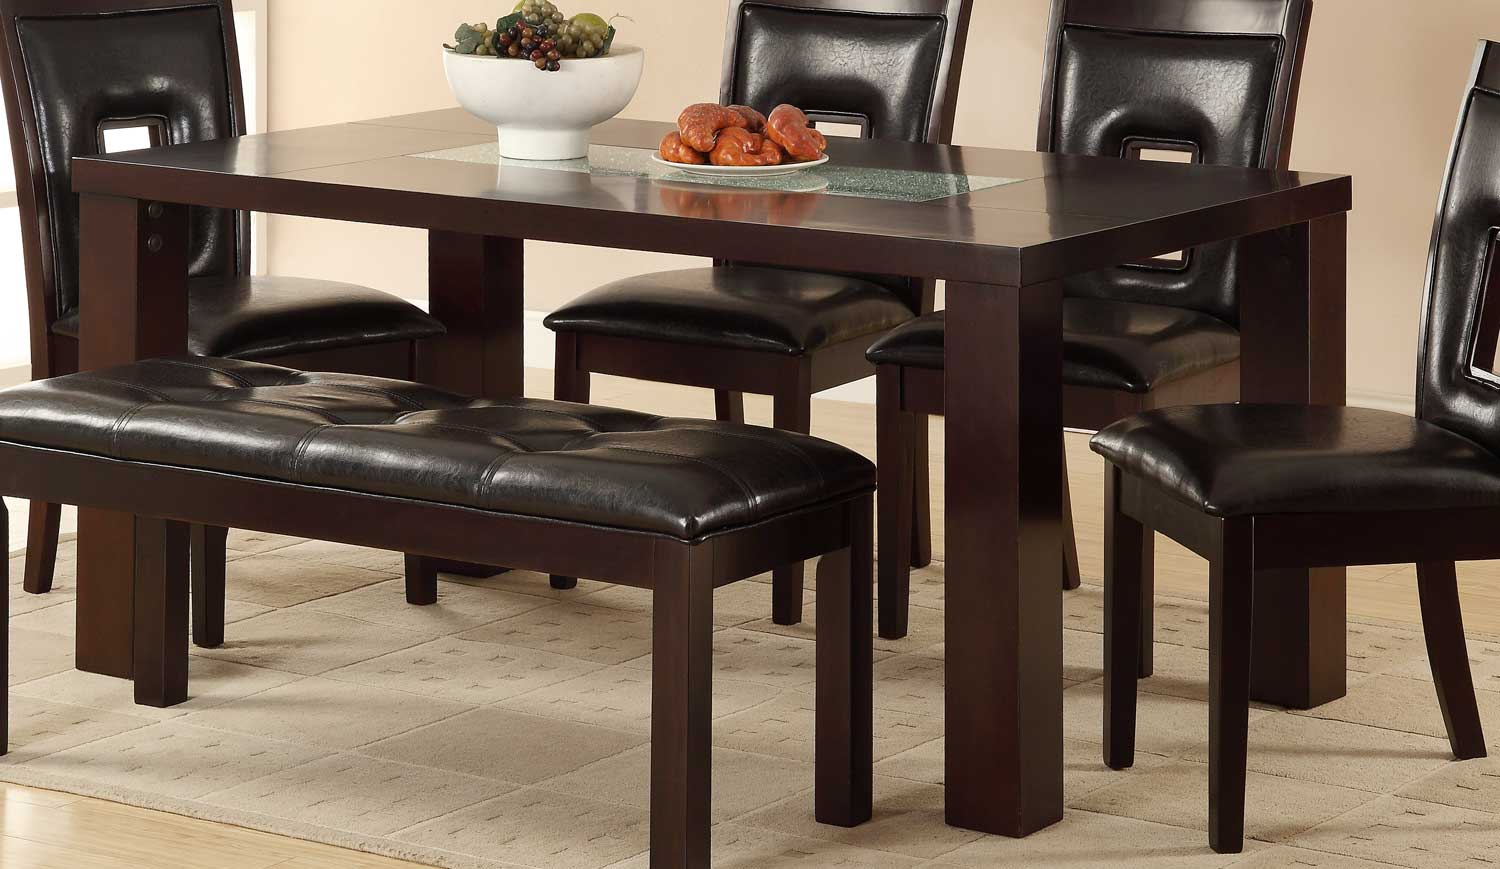 Homelegance Lee Dining Table